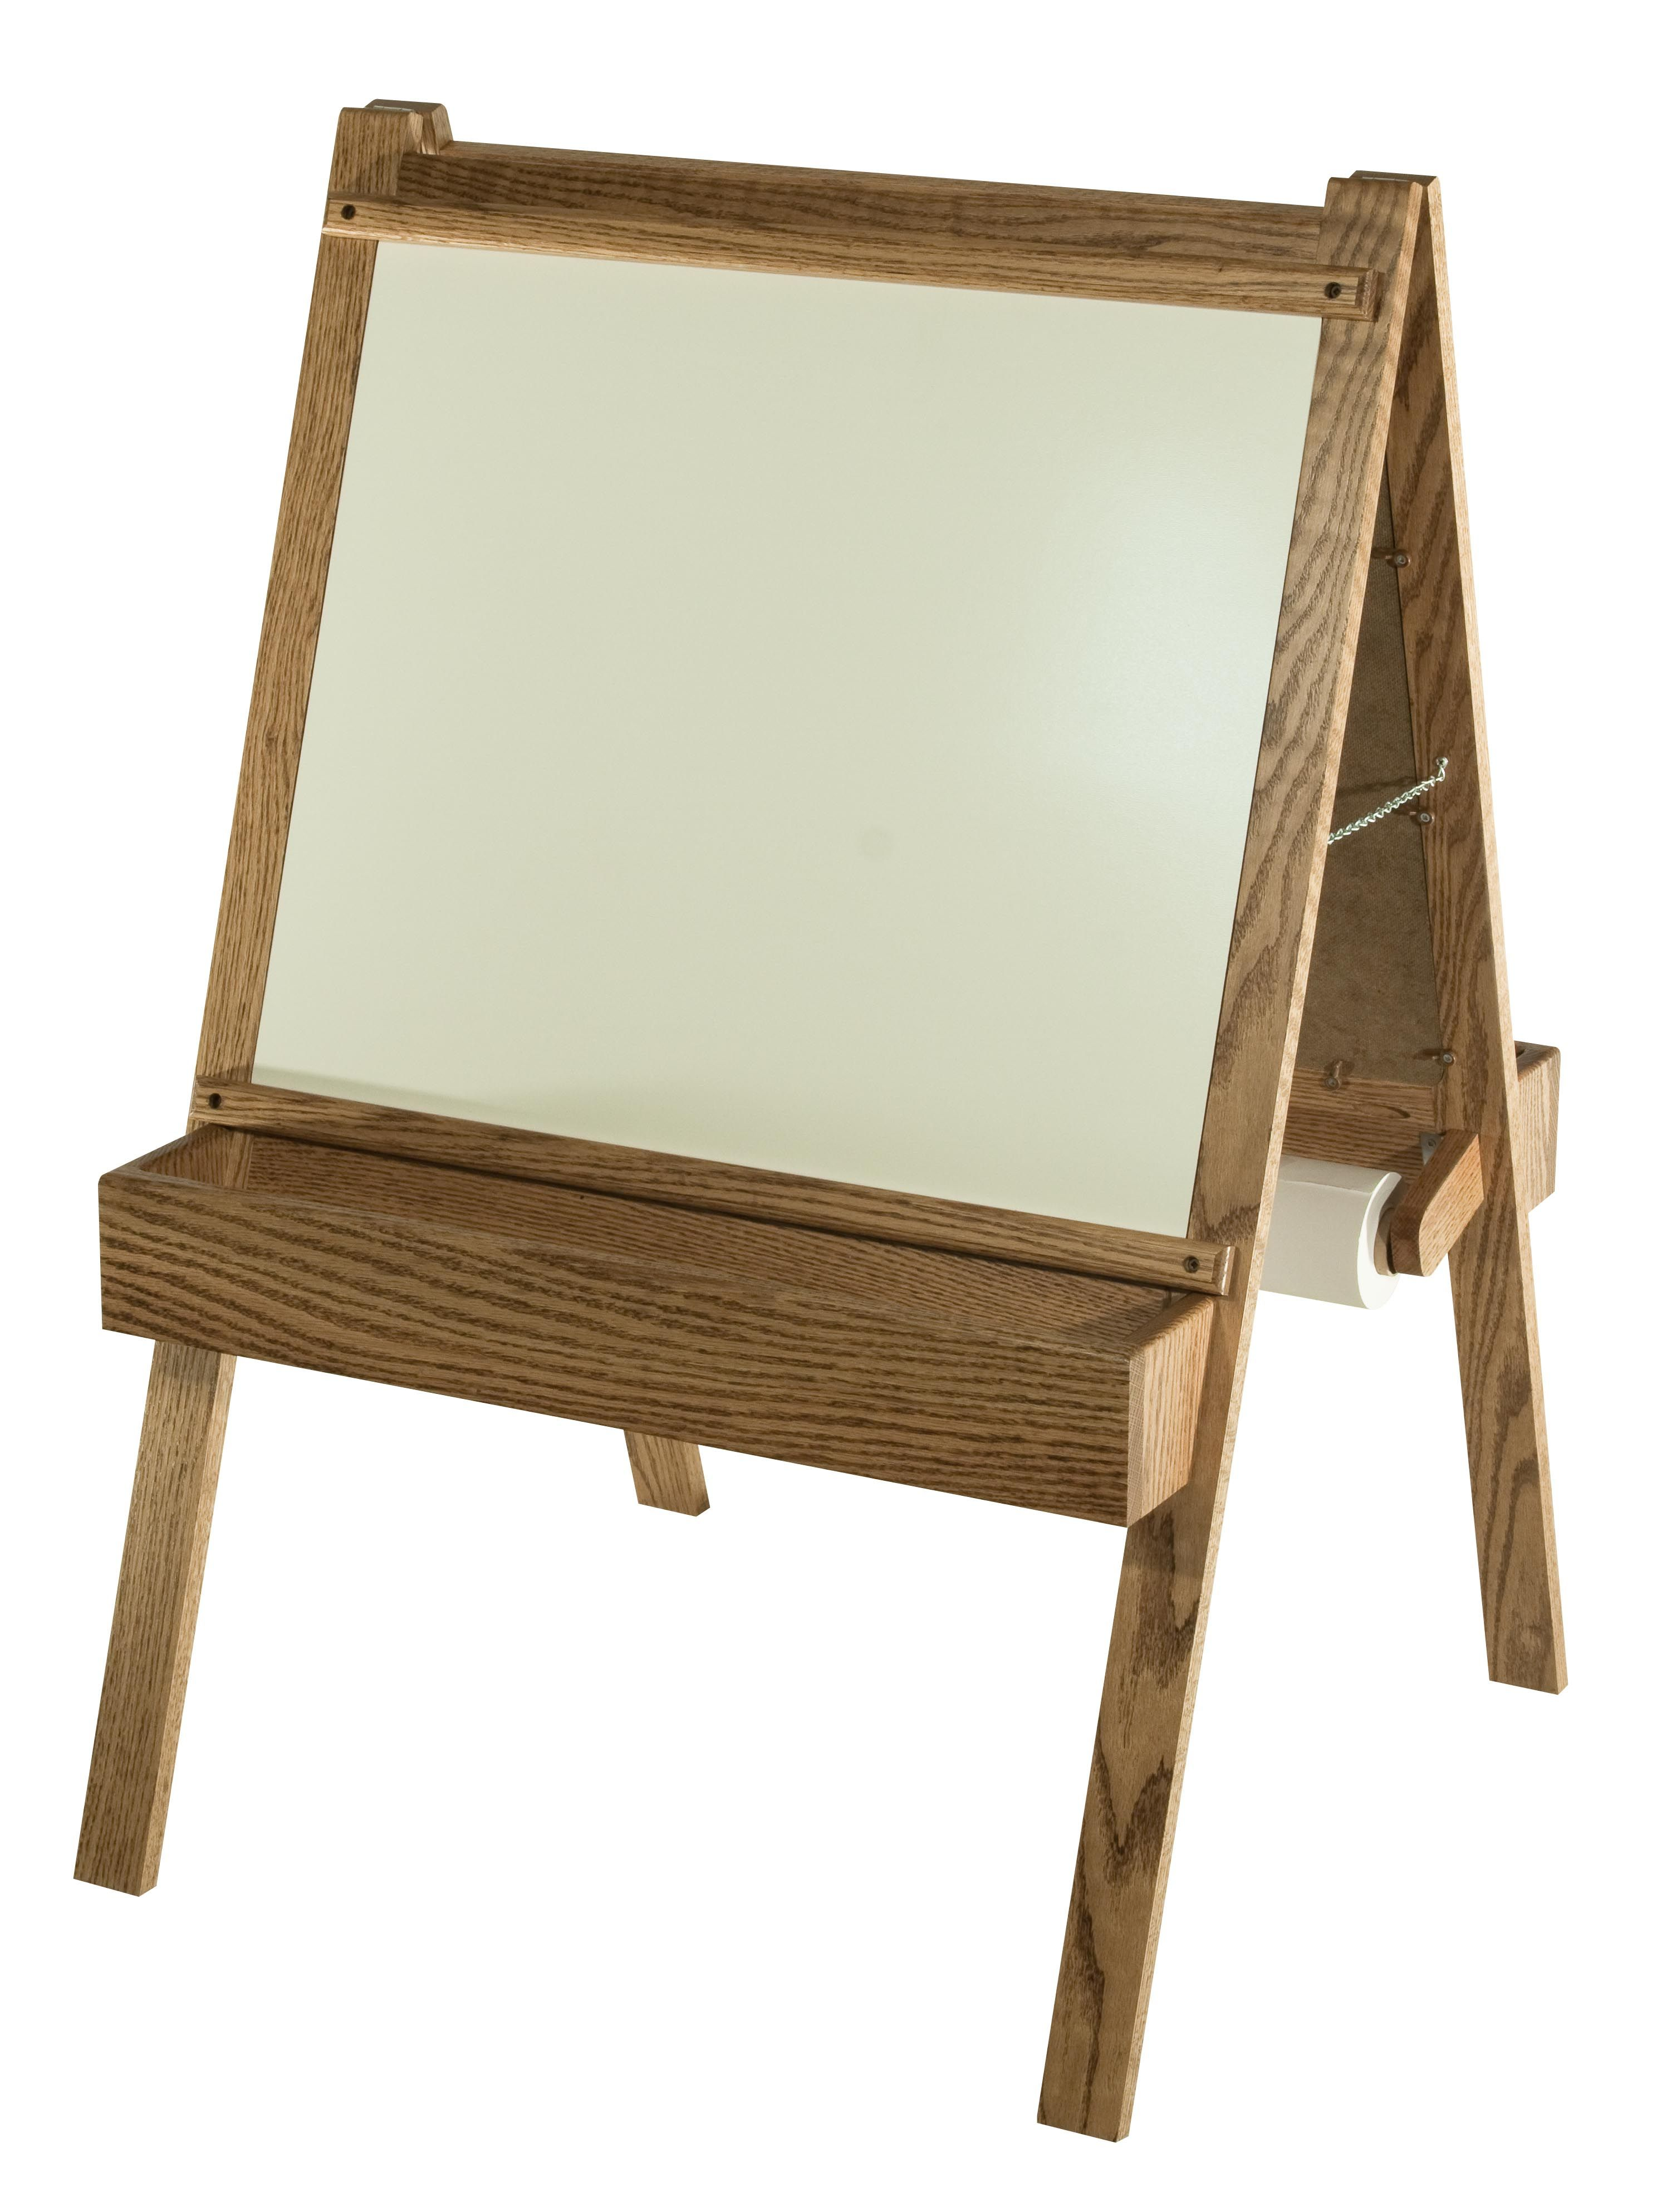 Solid Wood Child s Art Easel with Whiteboard and Chalkboard